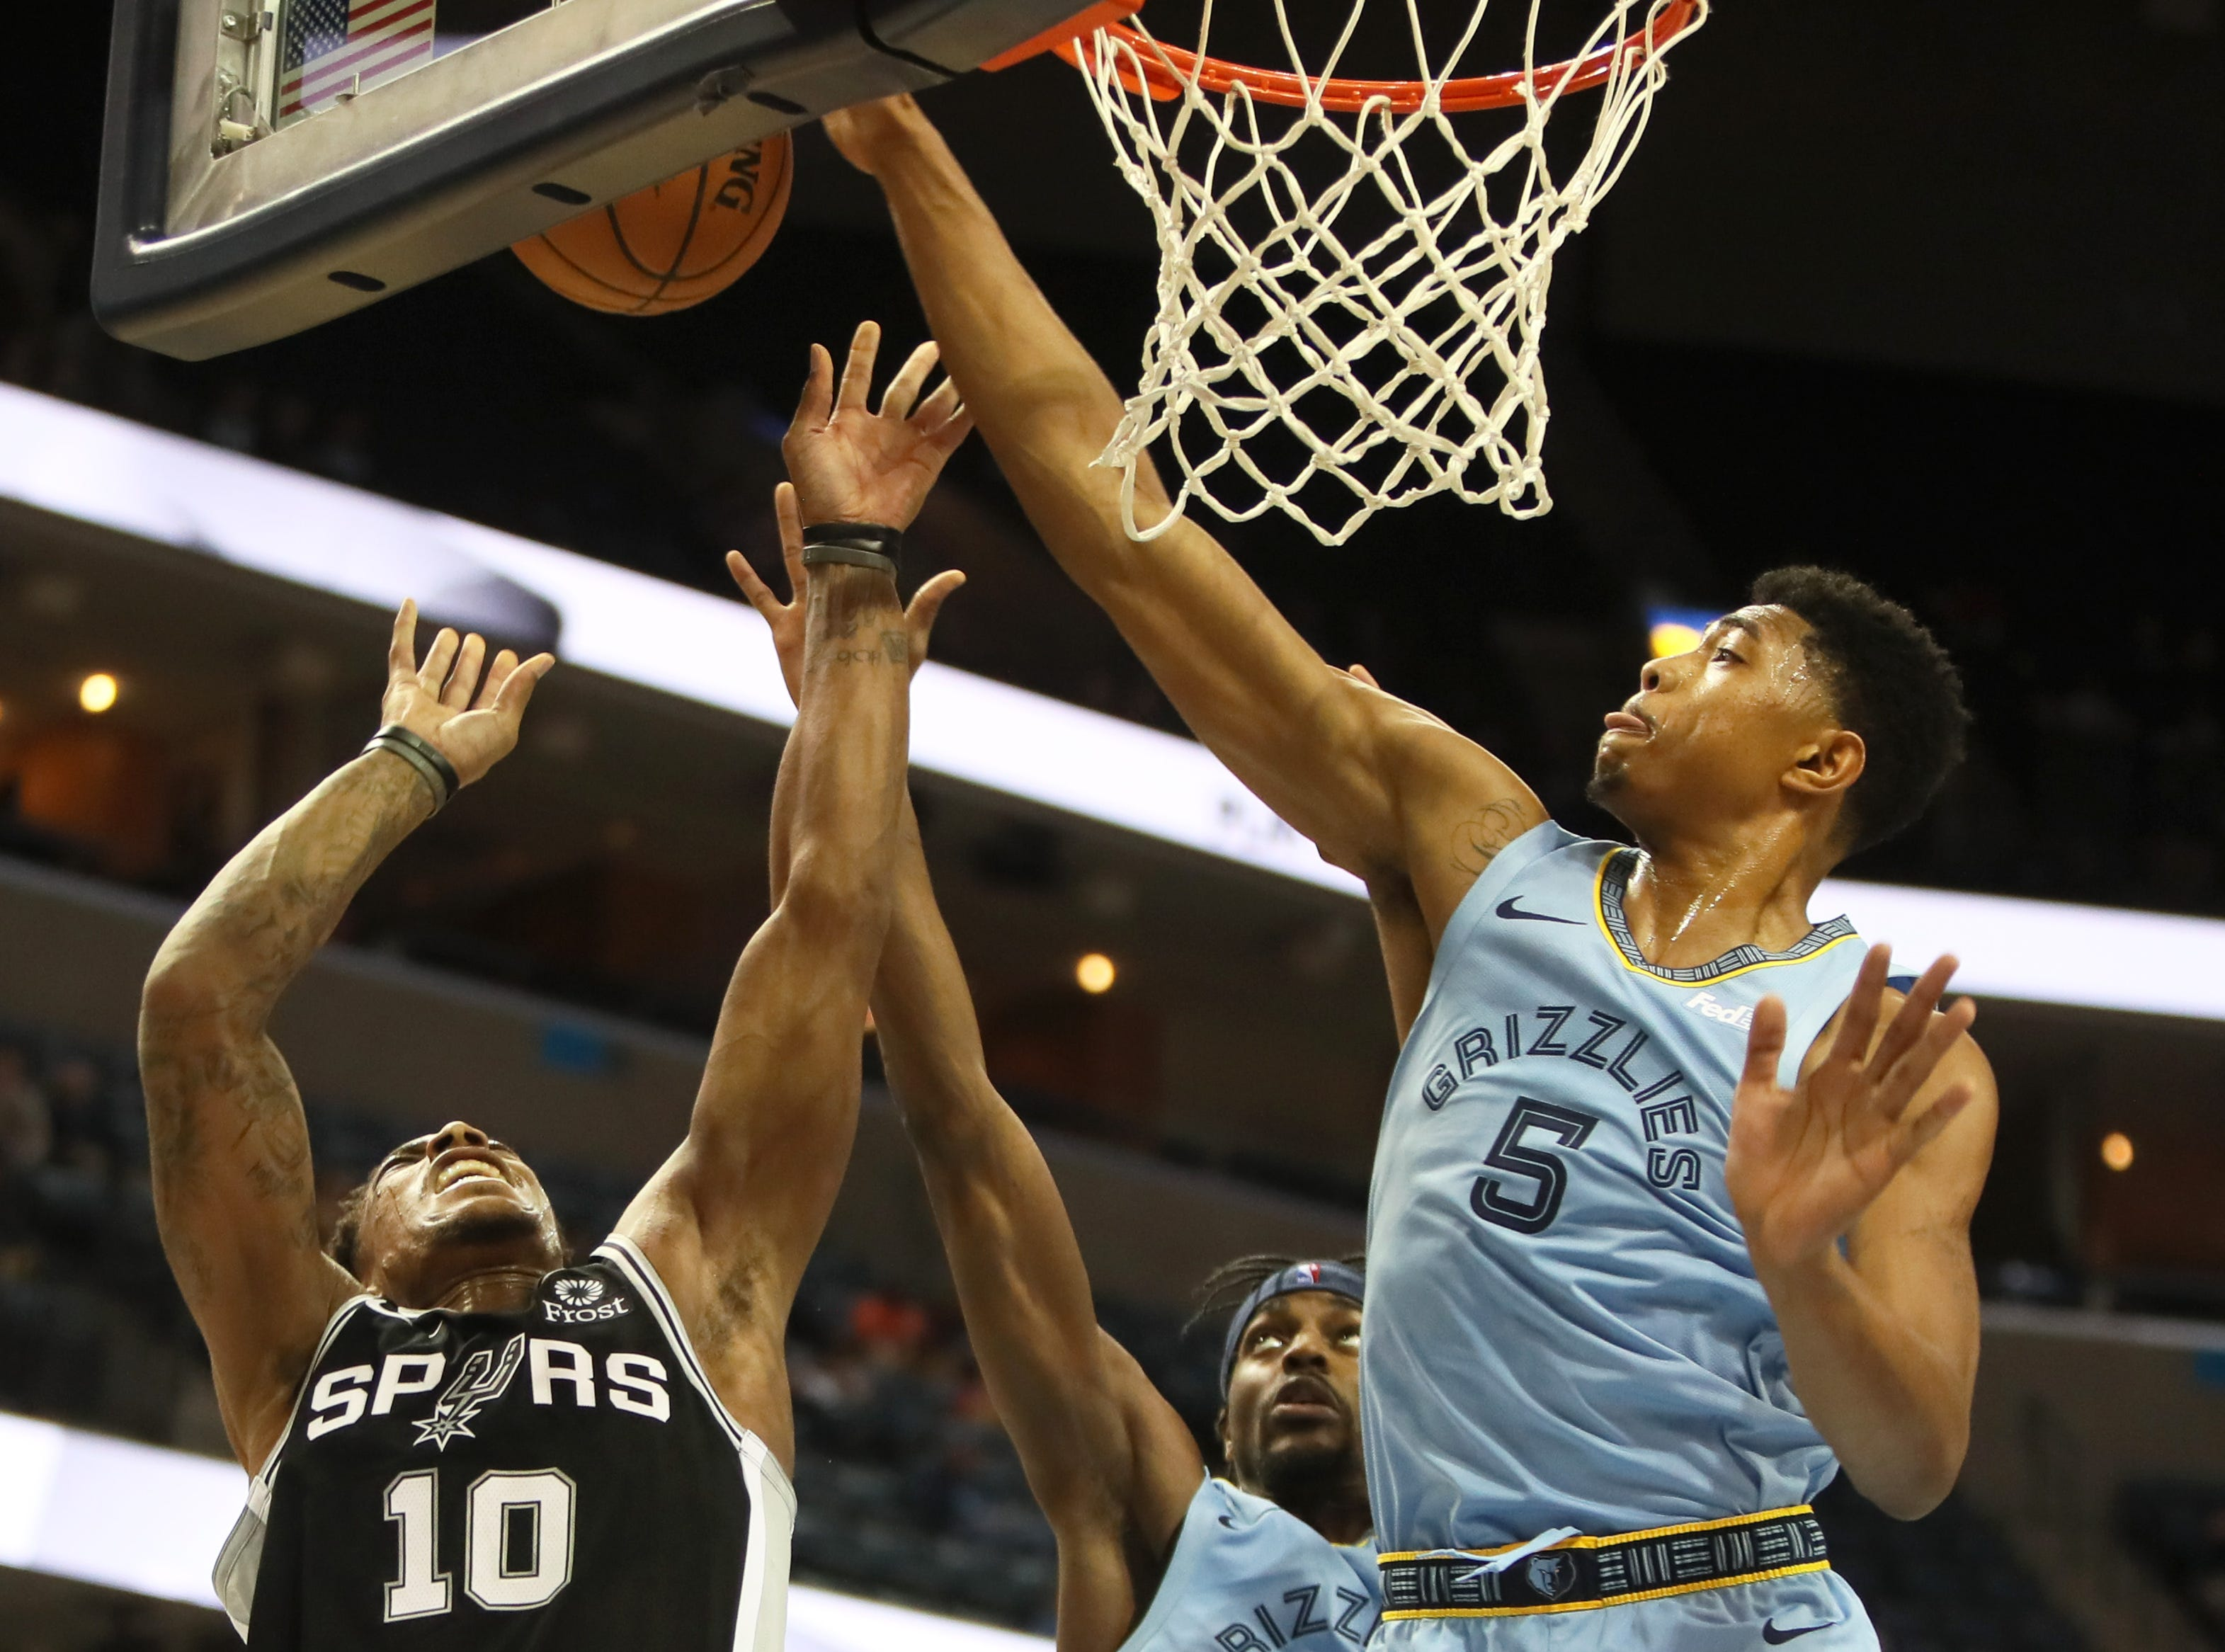 Memphis Grizzlies forward Bruno Caboclo bloacks a shot by San Antonio Spurs guard DeMar DeRozan during their game at the FedExForum on Tuesday, Feb. 12, 2019.